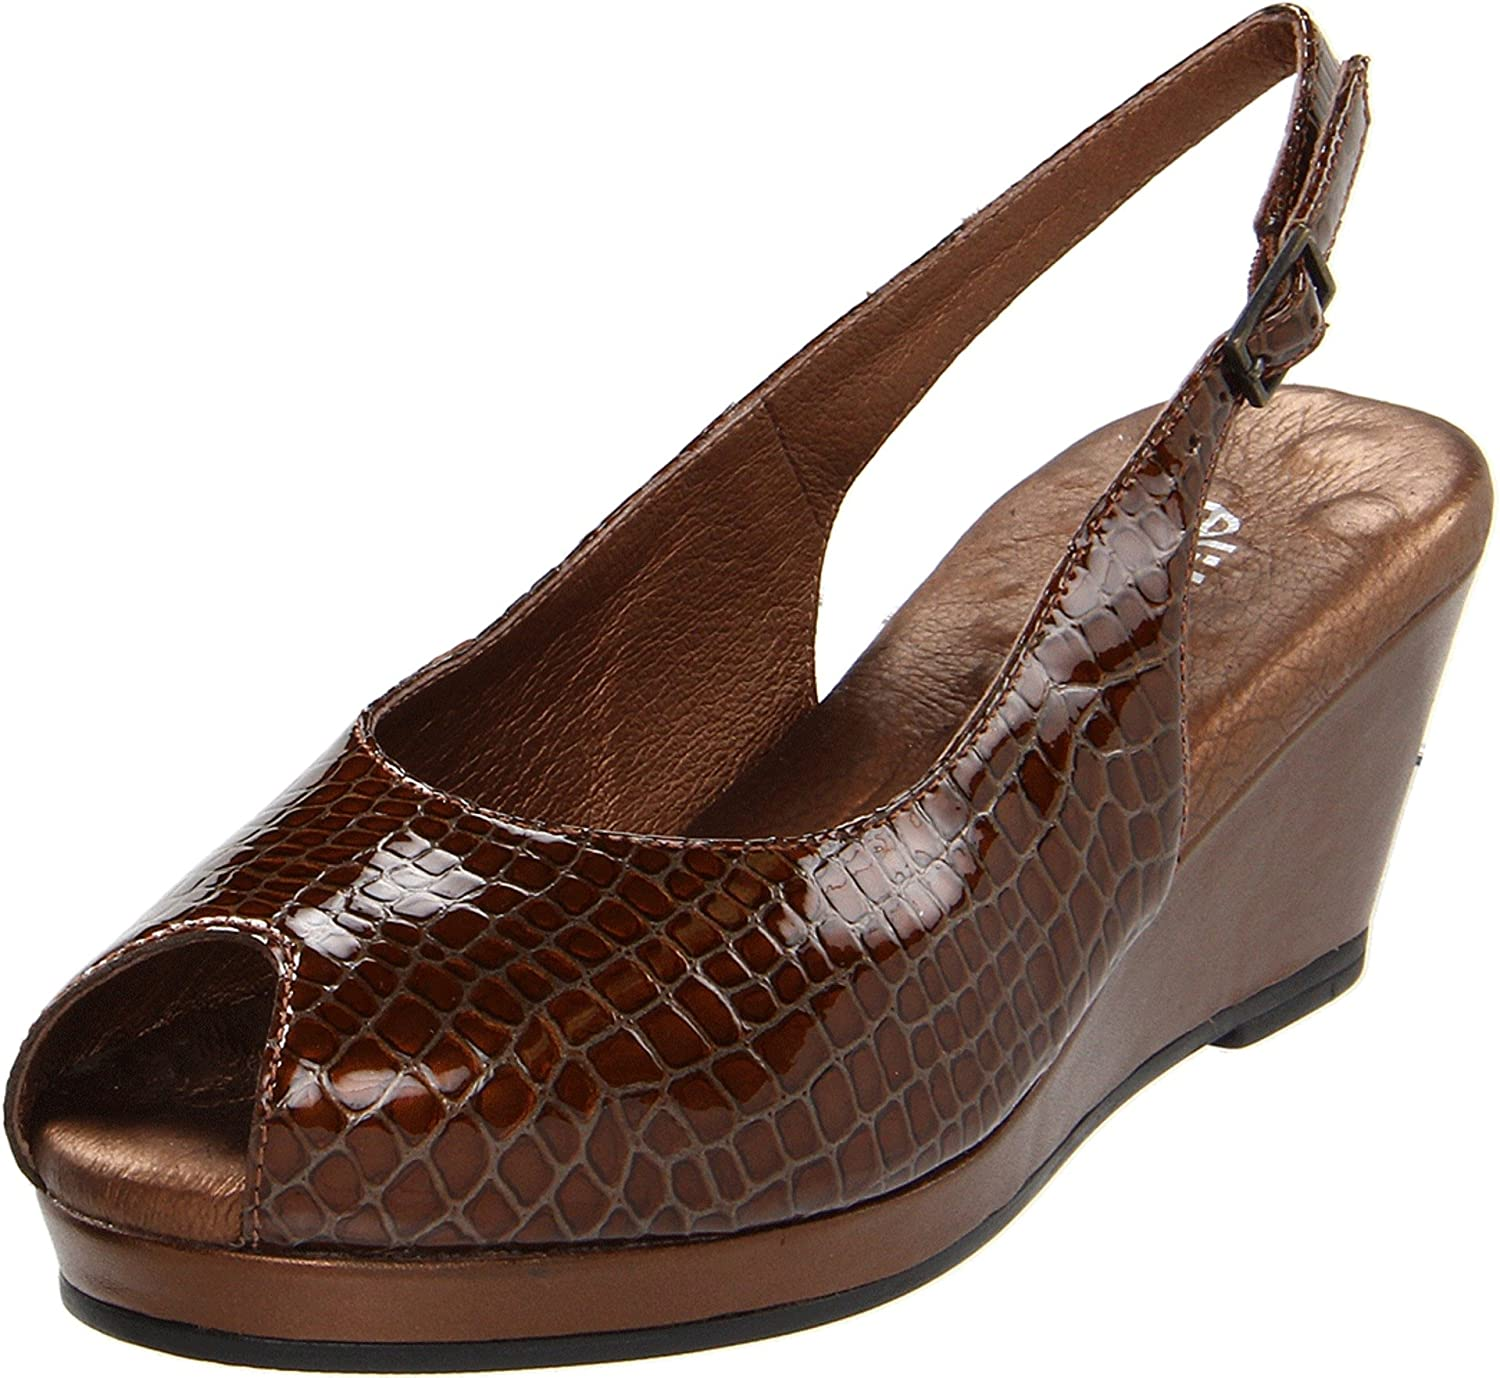 Walking Cradles Women's Natasha Pump B004127WIQ 9 B(M) US|Dark Copper Baby Gator